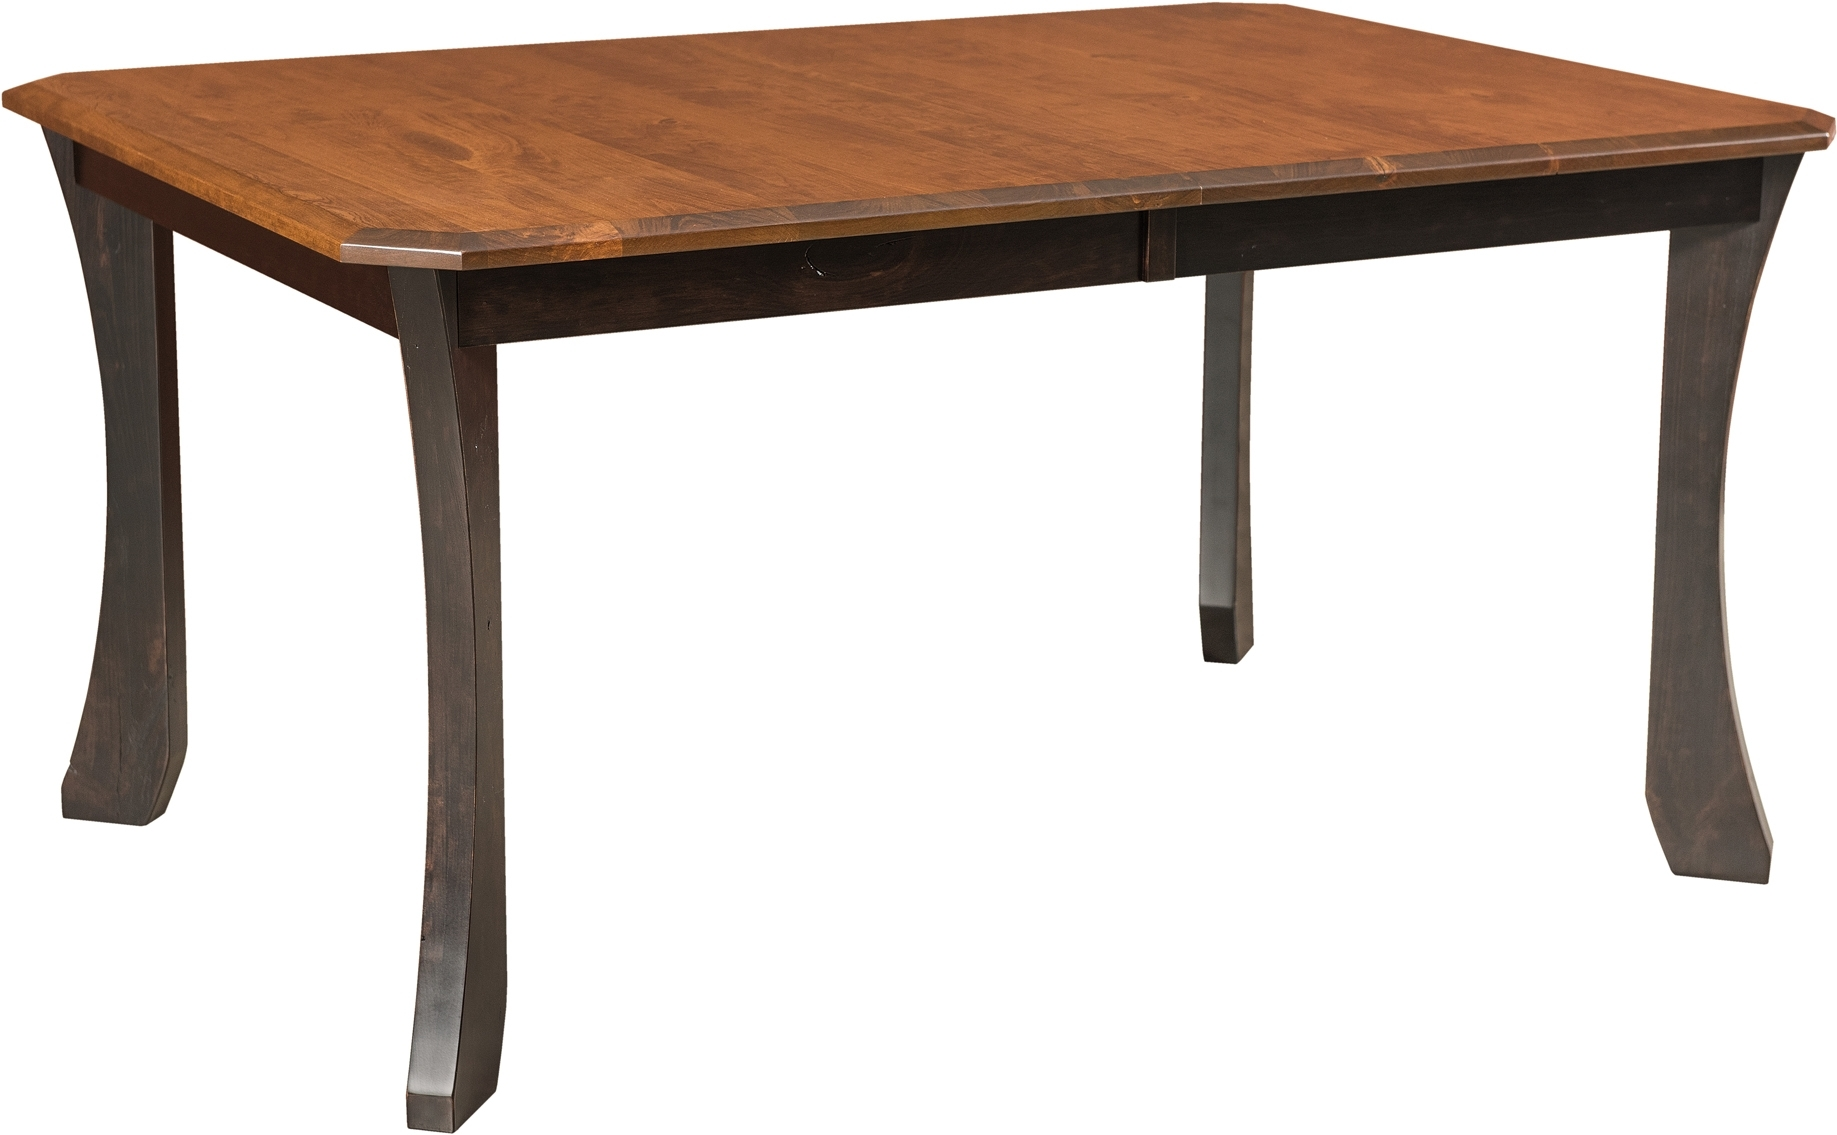 Monarch Leg Dining Table | Amish Leg Dining Table | Weaver Within Most Recent Weaver Ii Dining Tables (Photo 16 of 20)